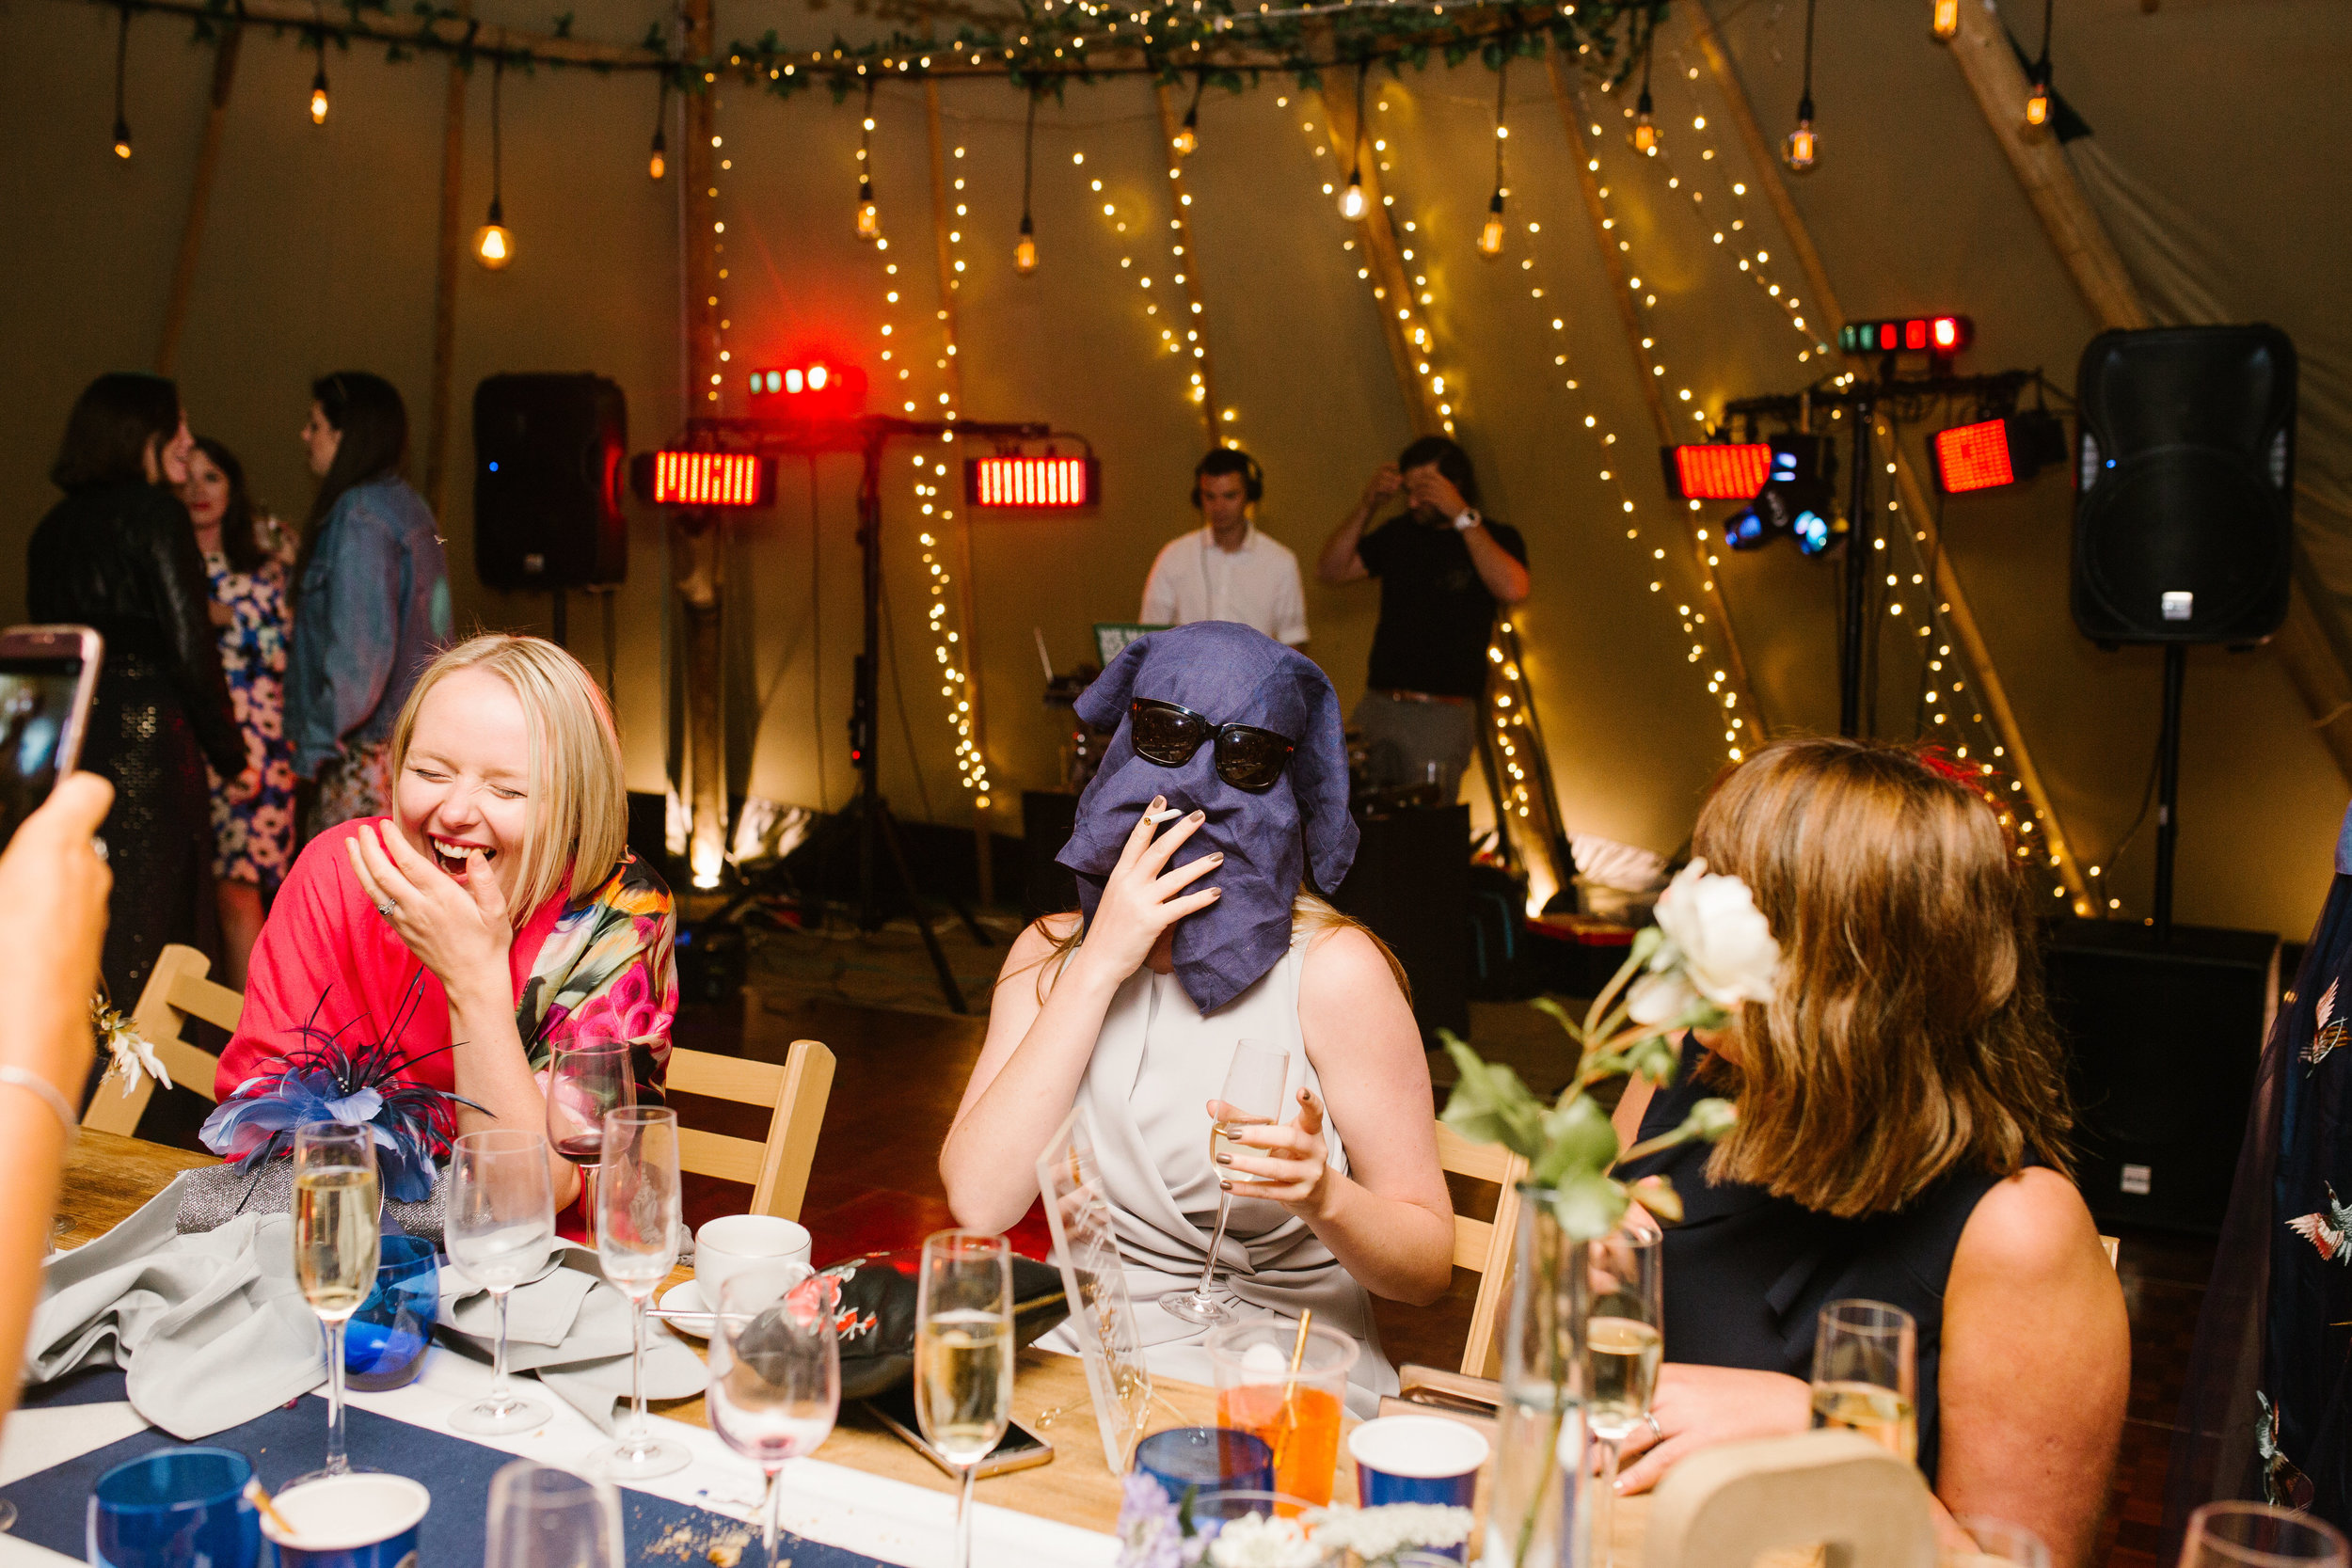 a candid photo of a wedding guest having fun with a napkn on her head as other guests laugh